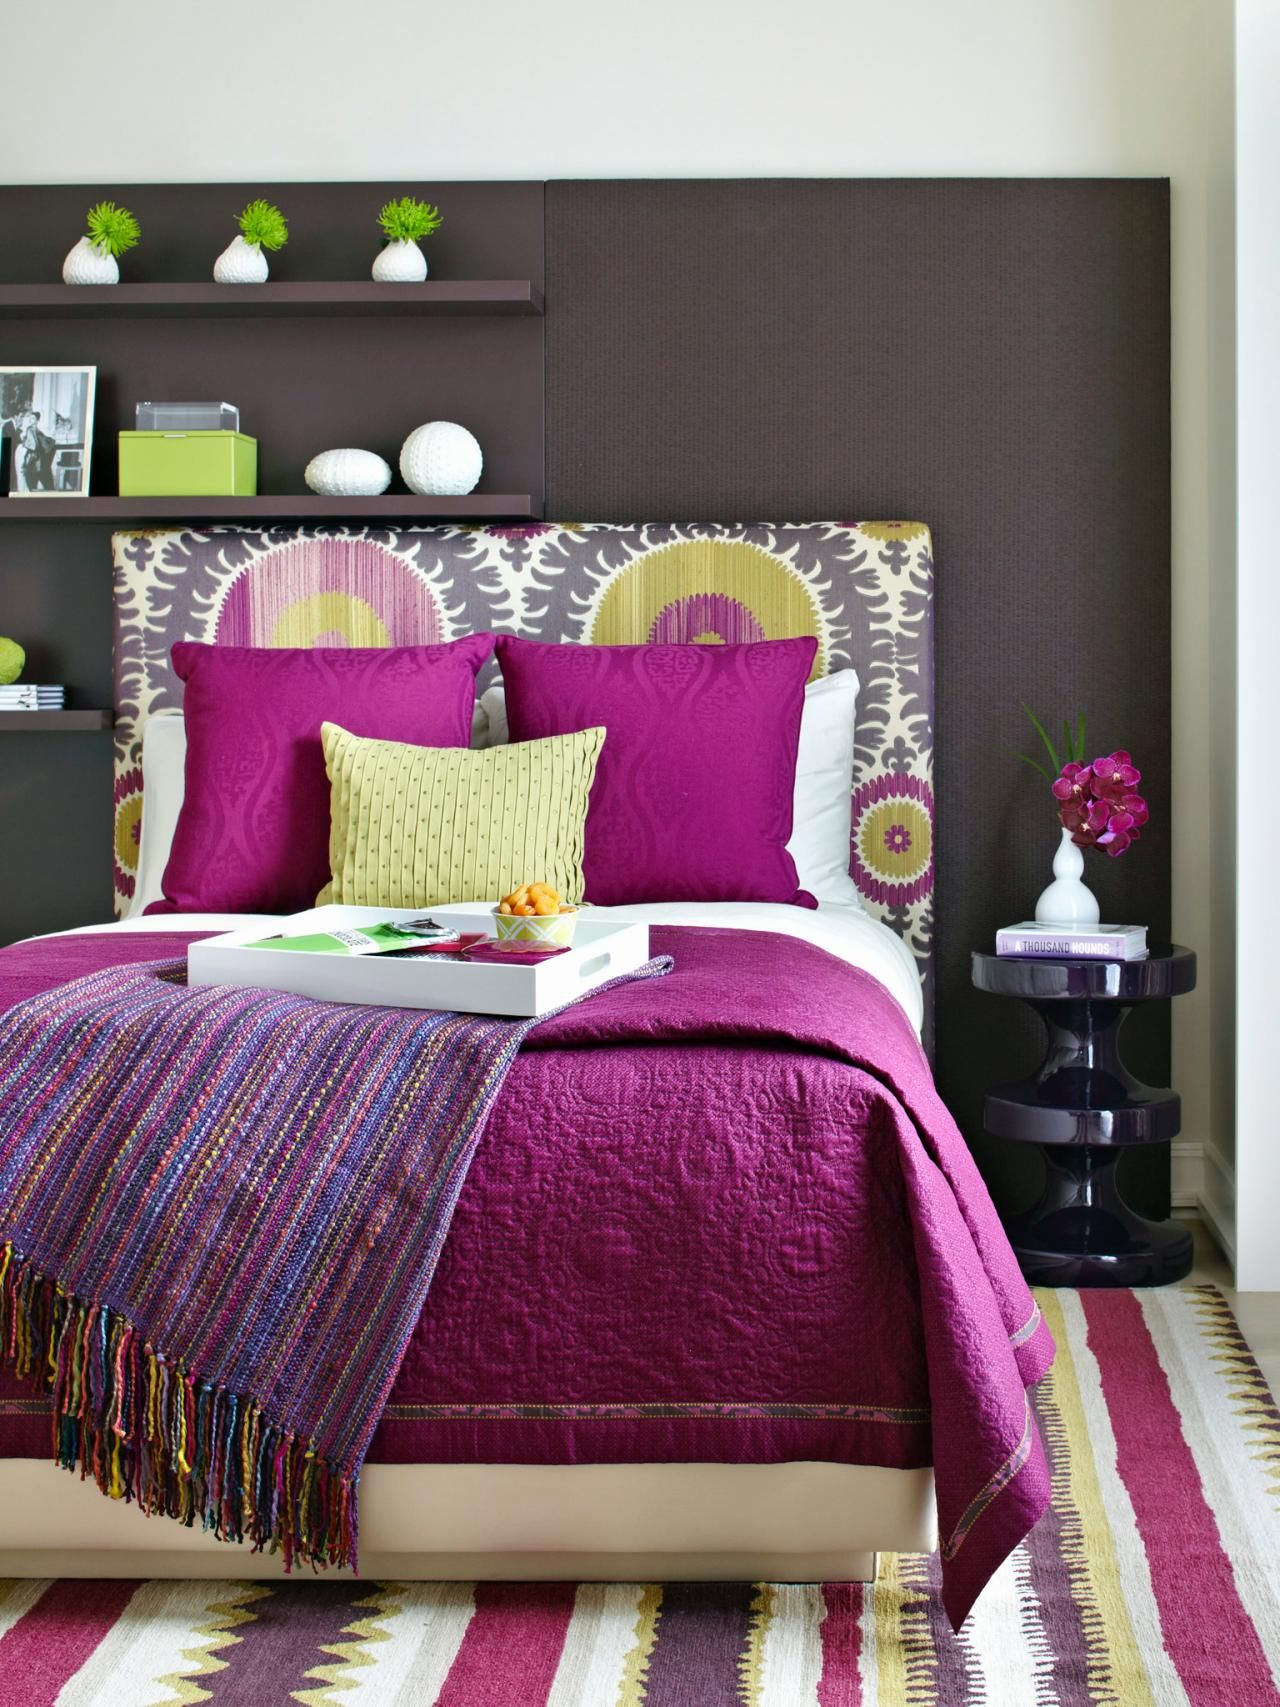 Beautiful Bedrooms: 15 Shades of Gray   Bedroom Decorating Ideas for Master, Kids, Guest, Nursery   HGTV